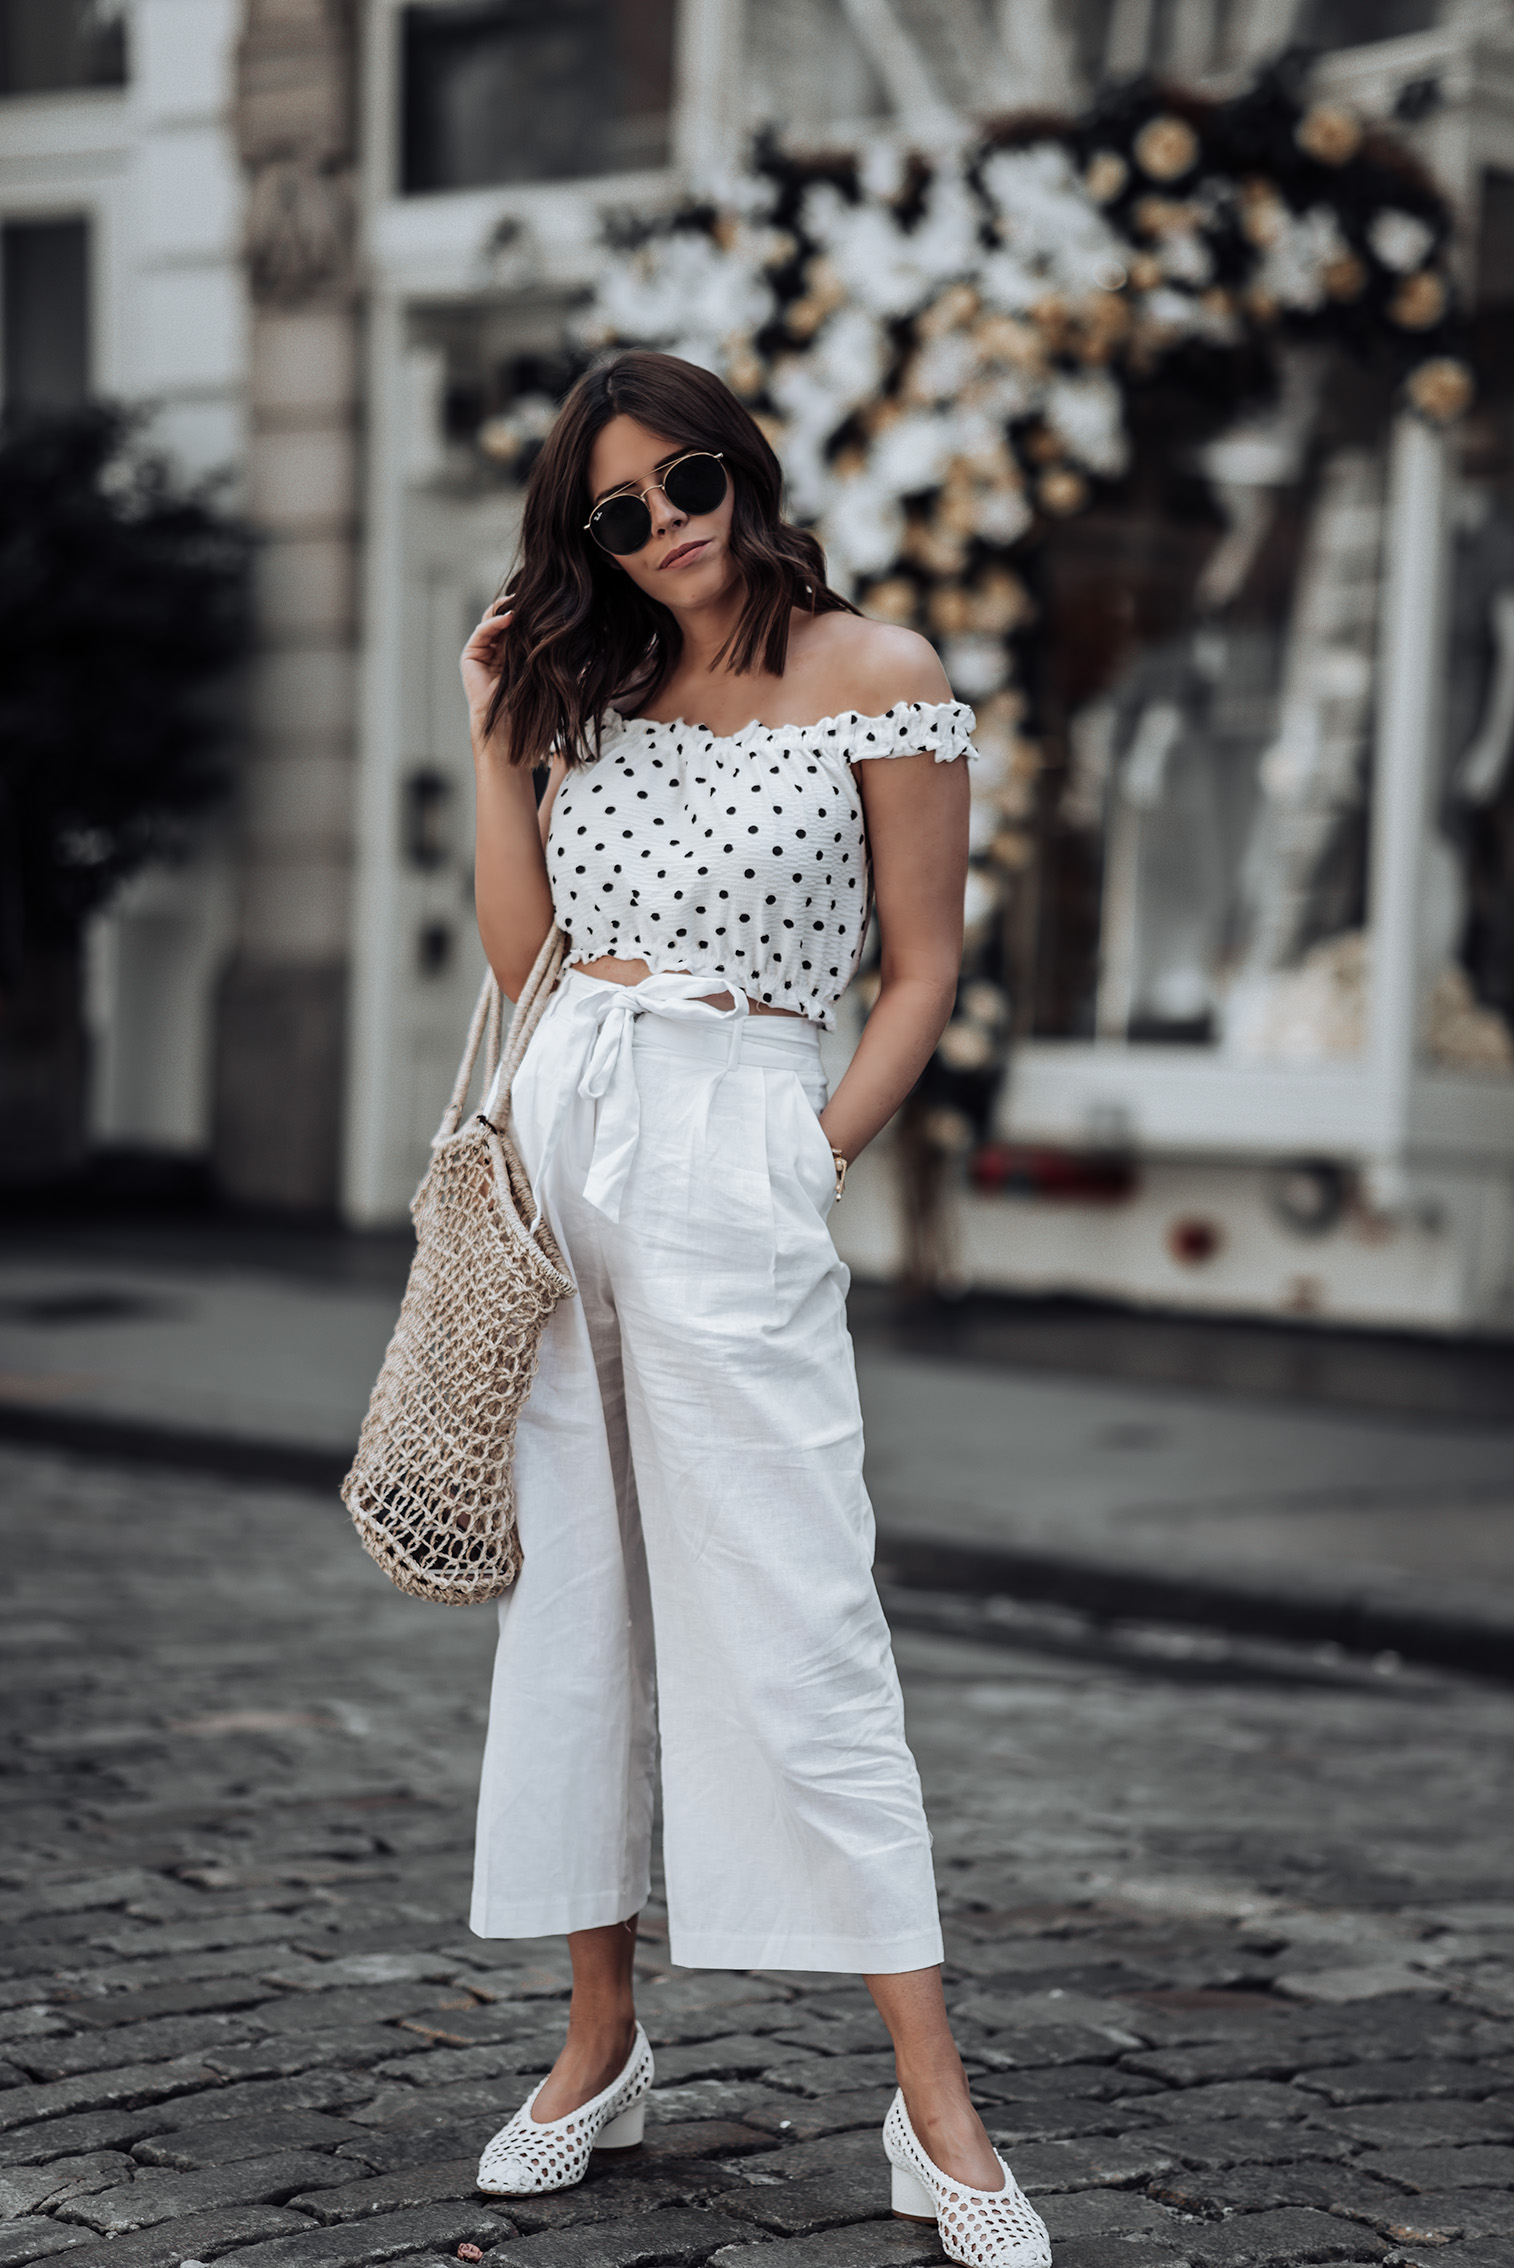 Memorial Day Sales | ASOS Tie Waist Pants (Identical here) | Topshop Polka Dot Crop Top | Topshop Woven Heels in White | Reformation Knit Market Bag (Similar) | #liketkit #paperbagpants #streetstyle #polkadots #minimalist